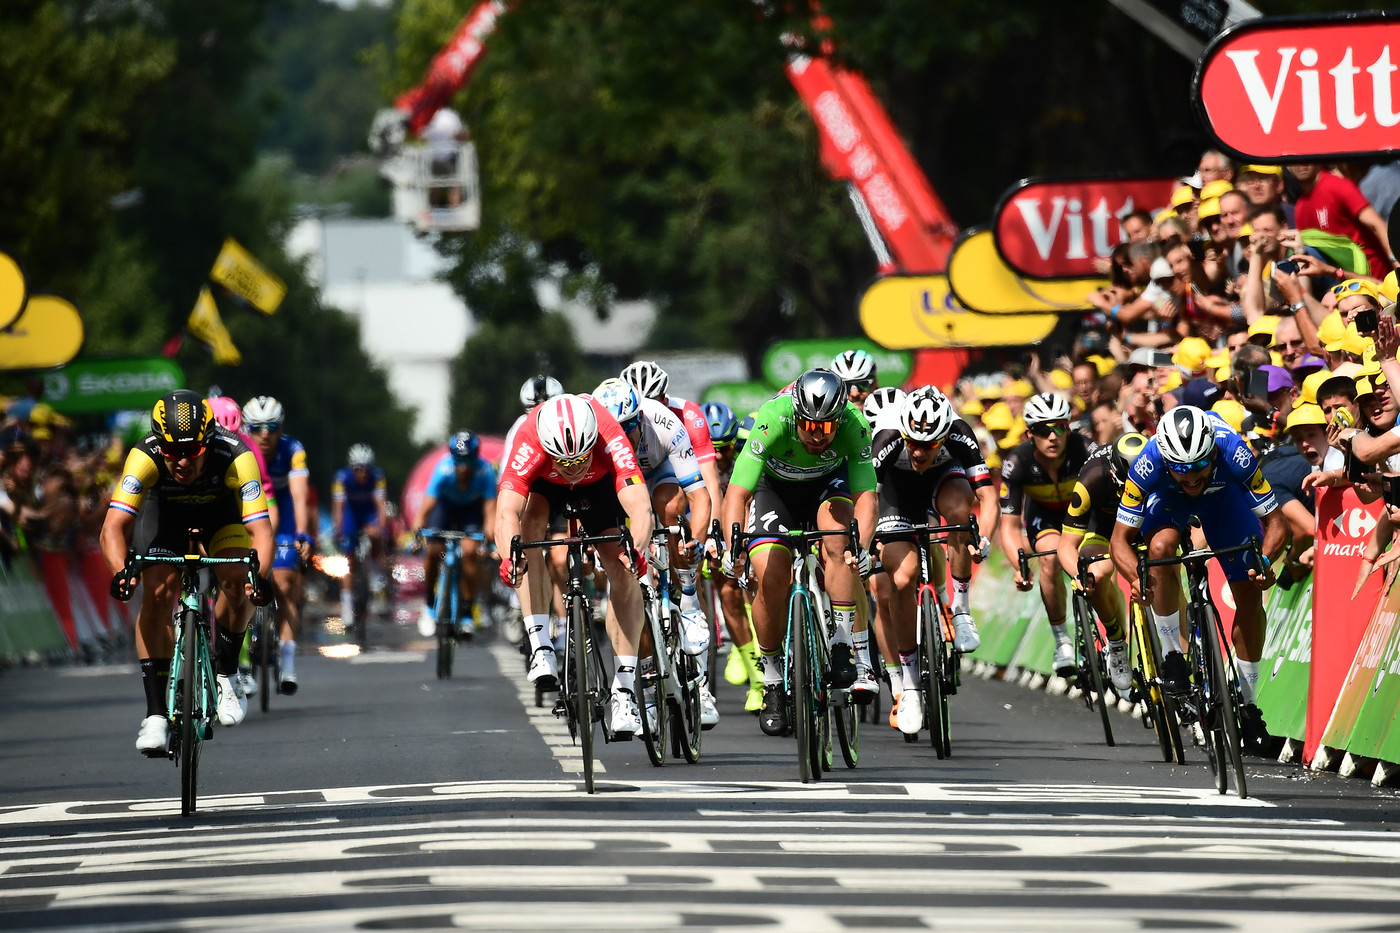 2018 Tour de France Greoenwegen wins Stage 8